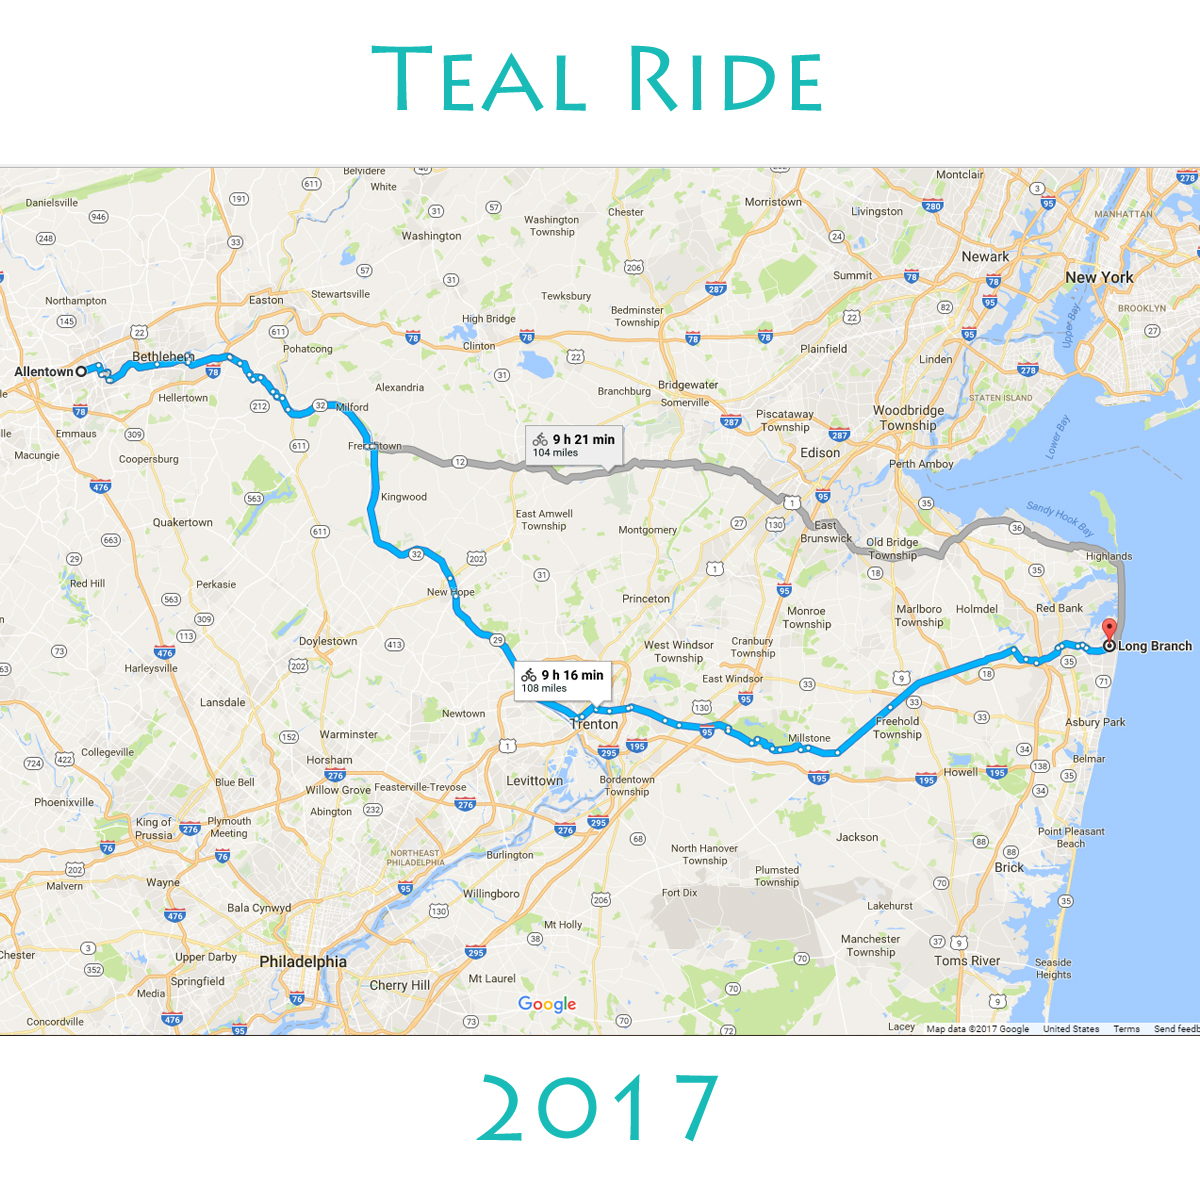 Teal Ride 2017 to Fight Ovarian Cancer Photo